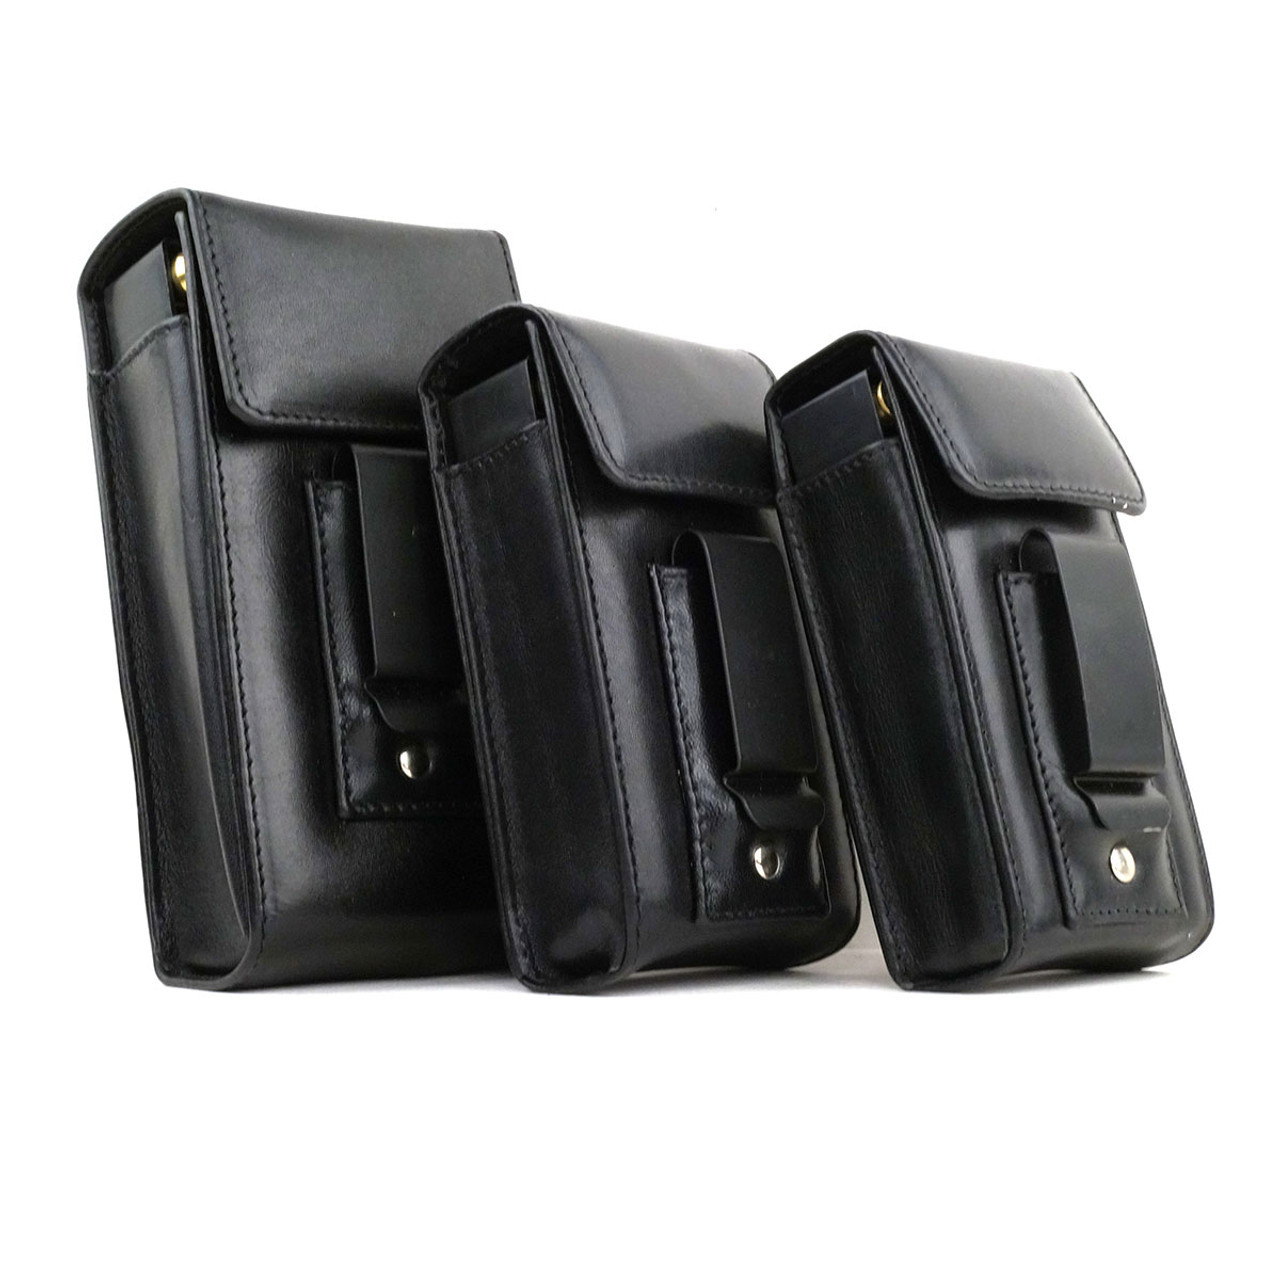 Colt Mustang Pocketlite Leather Arsenal 50 Round Belt Case